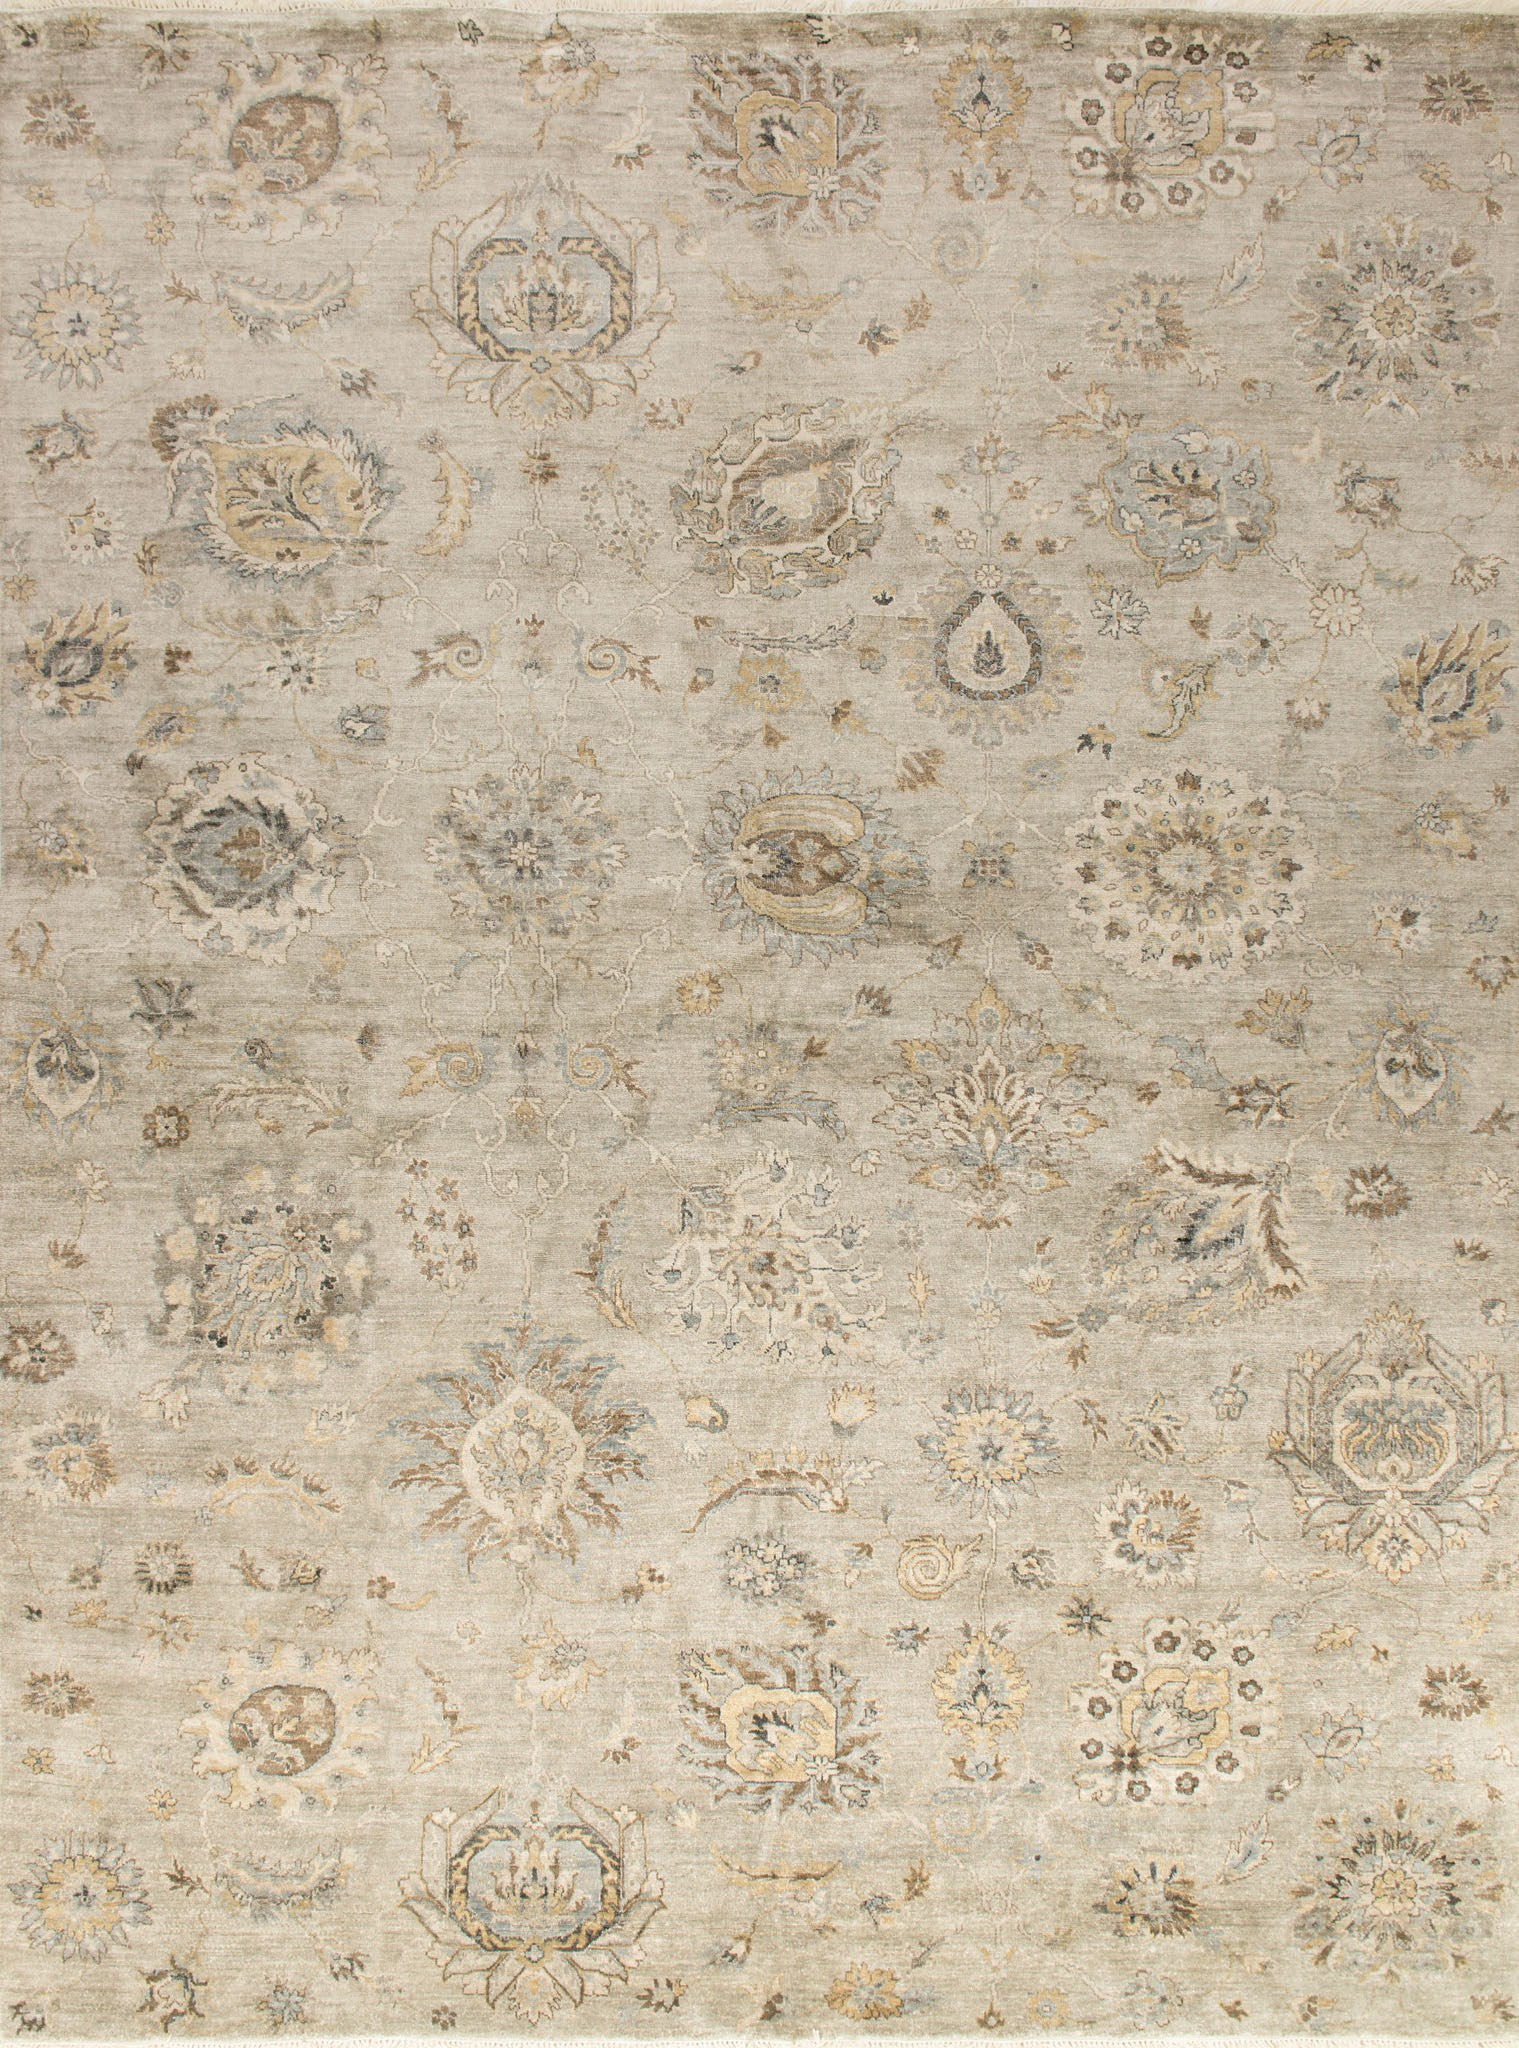 Loloi Kensington Kg 07 Silver Area Rug By Henrietta Spencer Churchill Incredible Rugs And Decor